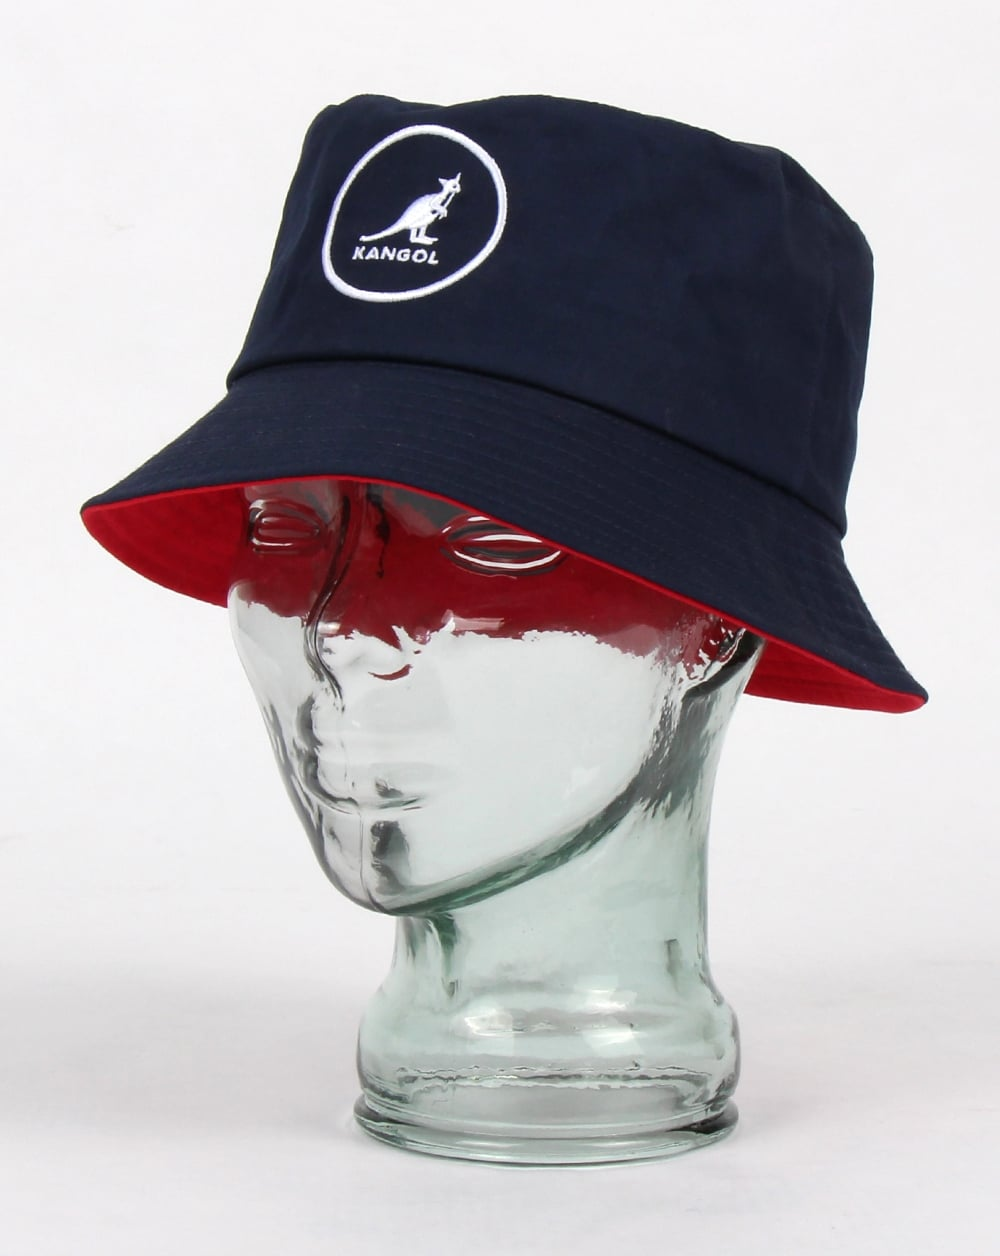 c0fafe3c6fafa Kangol Kangol Cotton Bucket Hat Navy